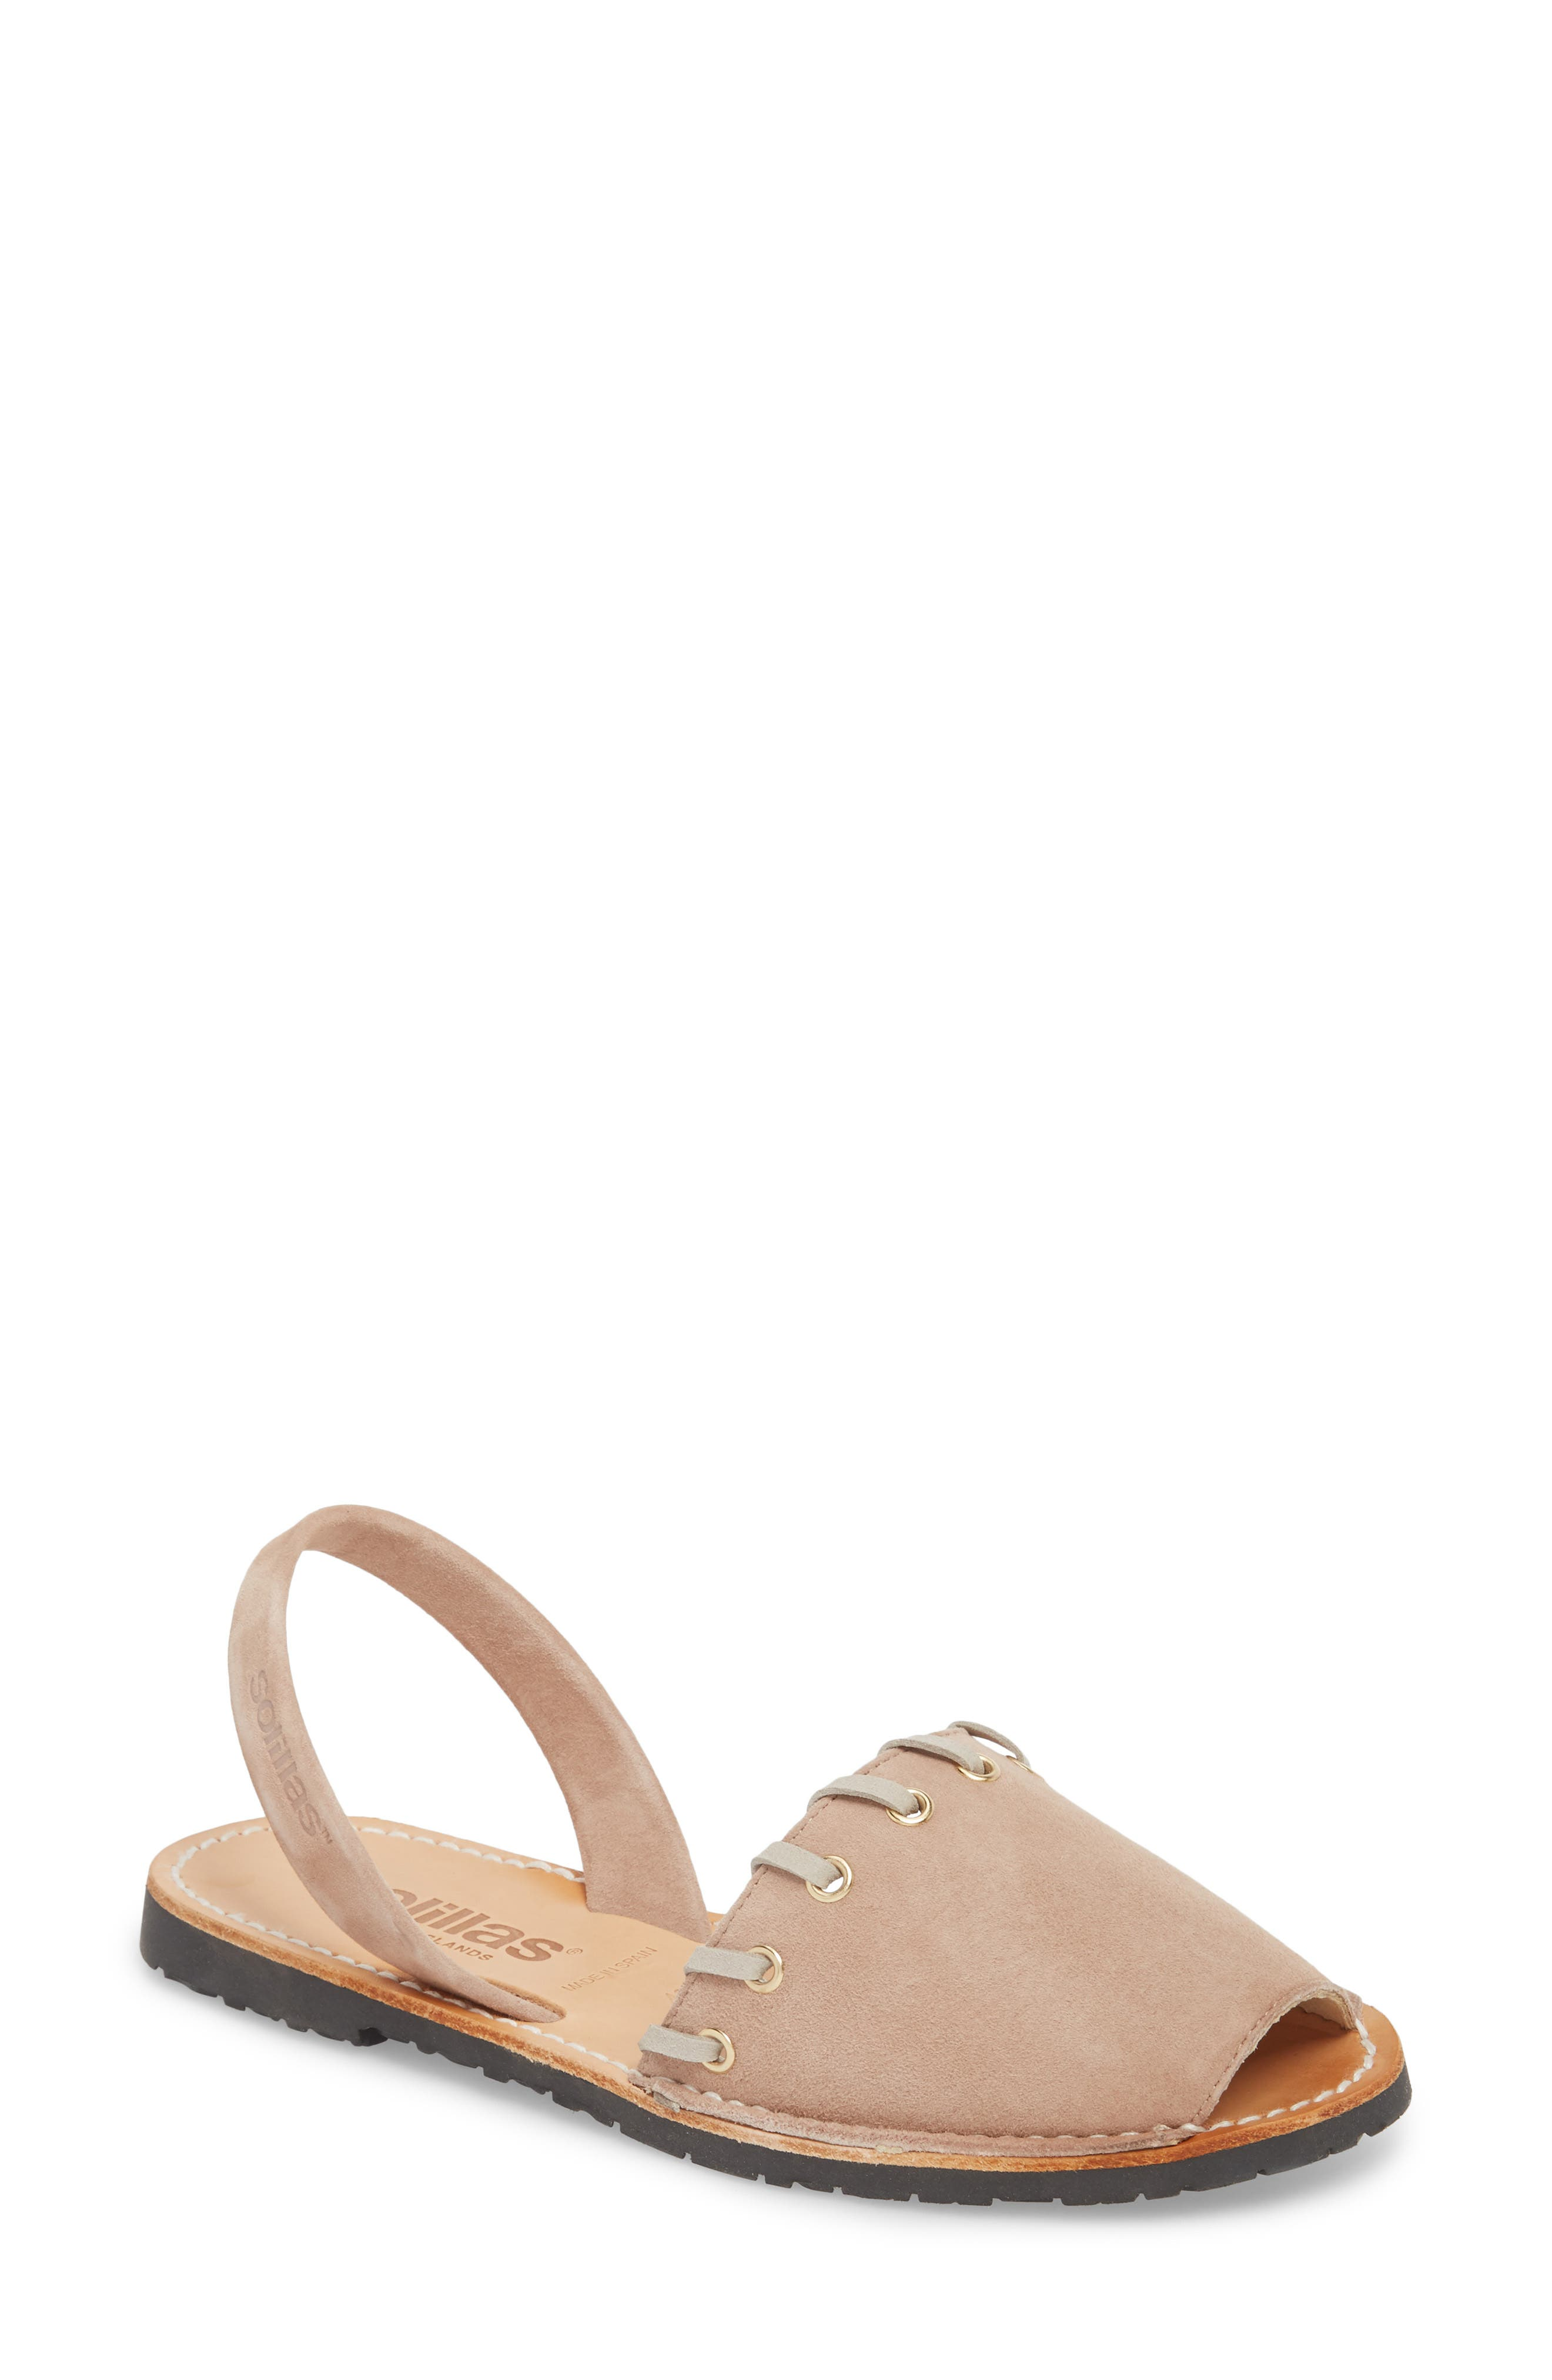 Whipstitched Flat Sandal,                             Main thumbnail 1, color,                             060